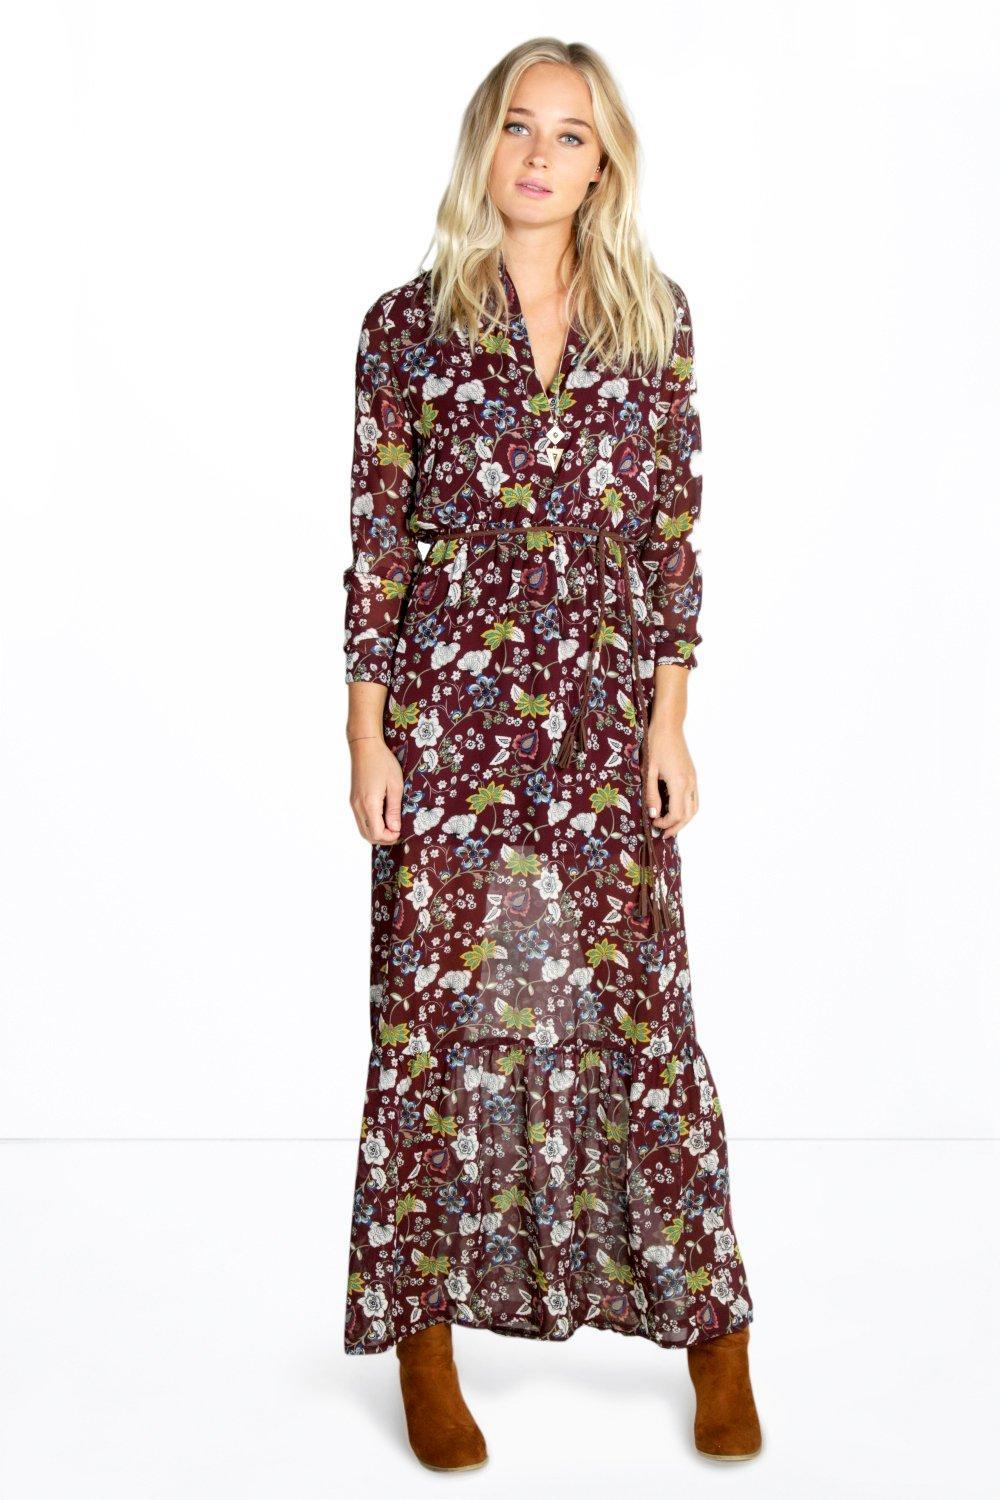 Bohemian Floral Plaited Belt Maxi Dress Black - neckline: v-neck; style: maxi dress; length: ankle length; secondary colour: true red; predominant colour: black; occasions: evening, creative work; fit: soft a-line; fibres: polyester/polyamide - 100%; sleeve length: long sleeve; sleeve style: standard; texture group: crepes; pattern type: fabric; pattern size: big & busy; pattern: patterned/print; season: s/s 2016; wardrobe: highlight; embellishment location: bust